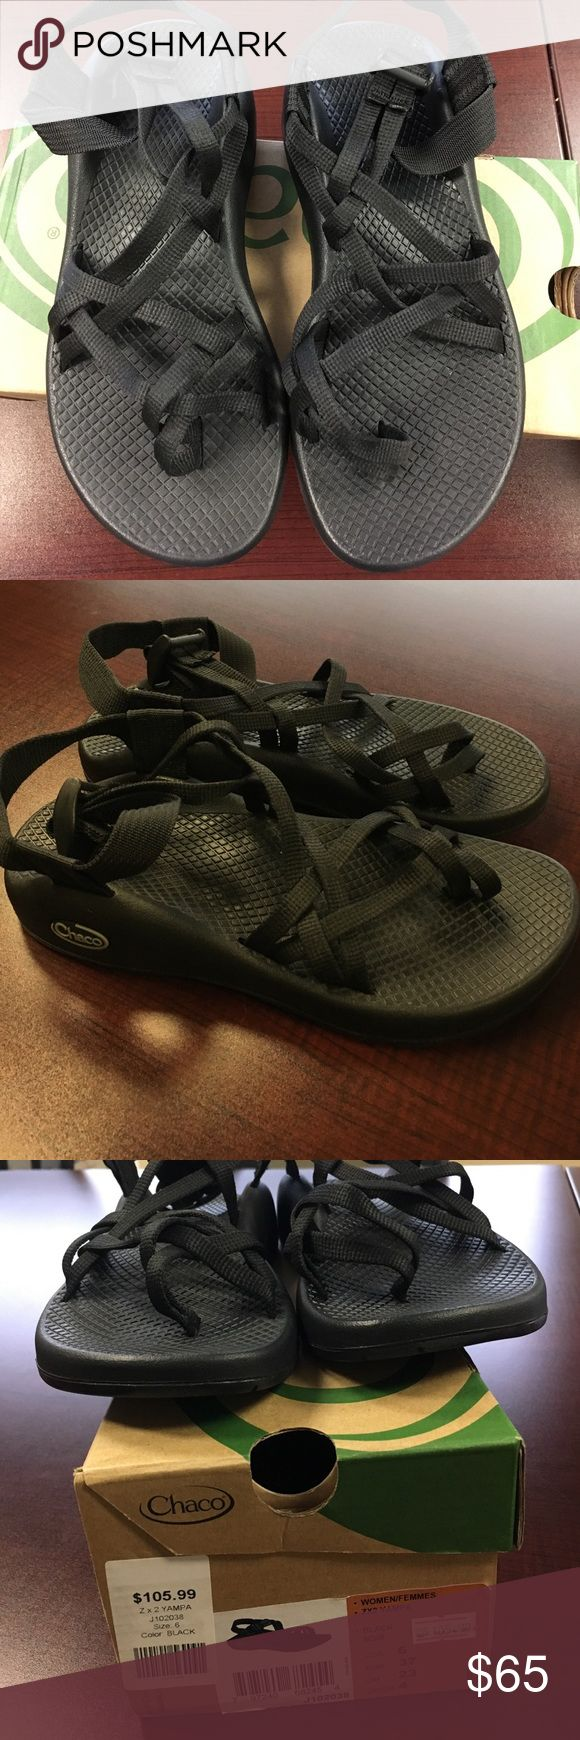 🔥🔥Chaco women's black ZX2 Yampa sandals Chaco women's ZX2 black Yampa sandals. These are amazing quality sandals and are brand-new in the box. This is the best online price you will find on Chaco sandals. Chaco Shoes Sandals